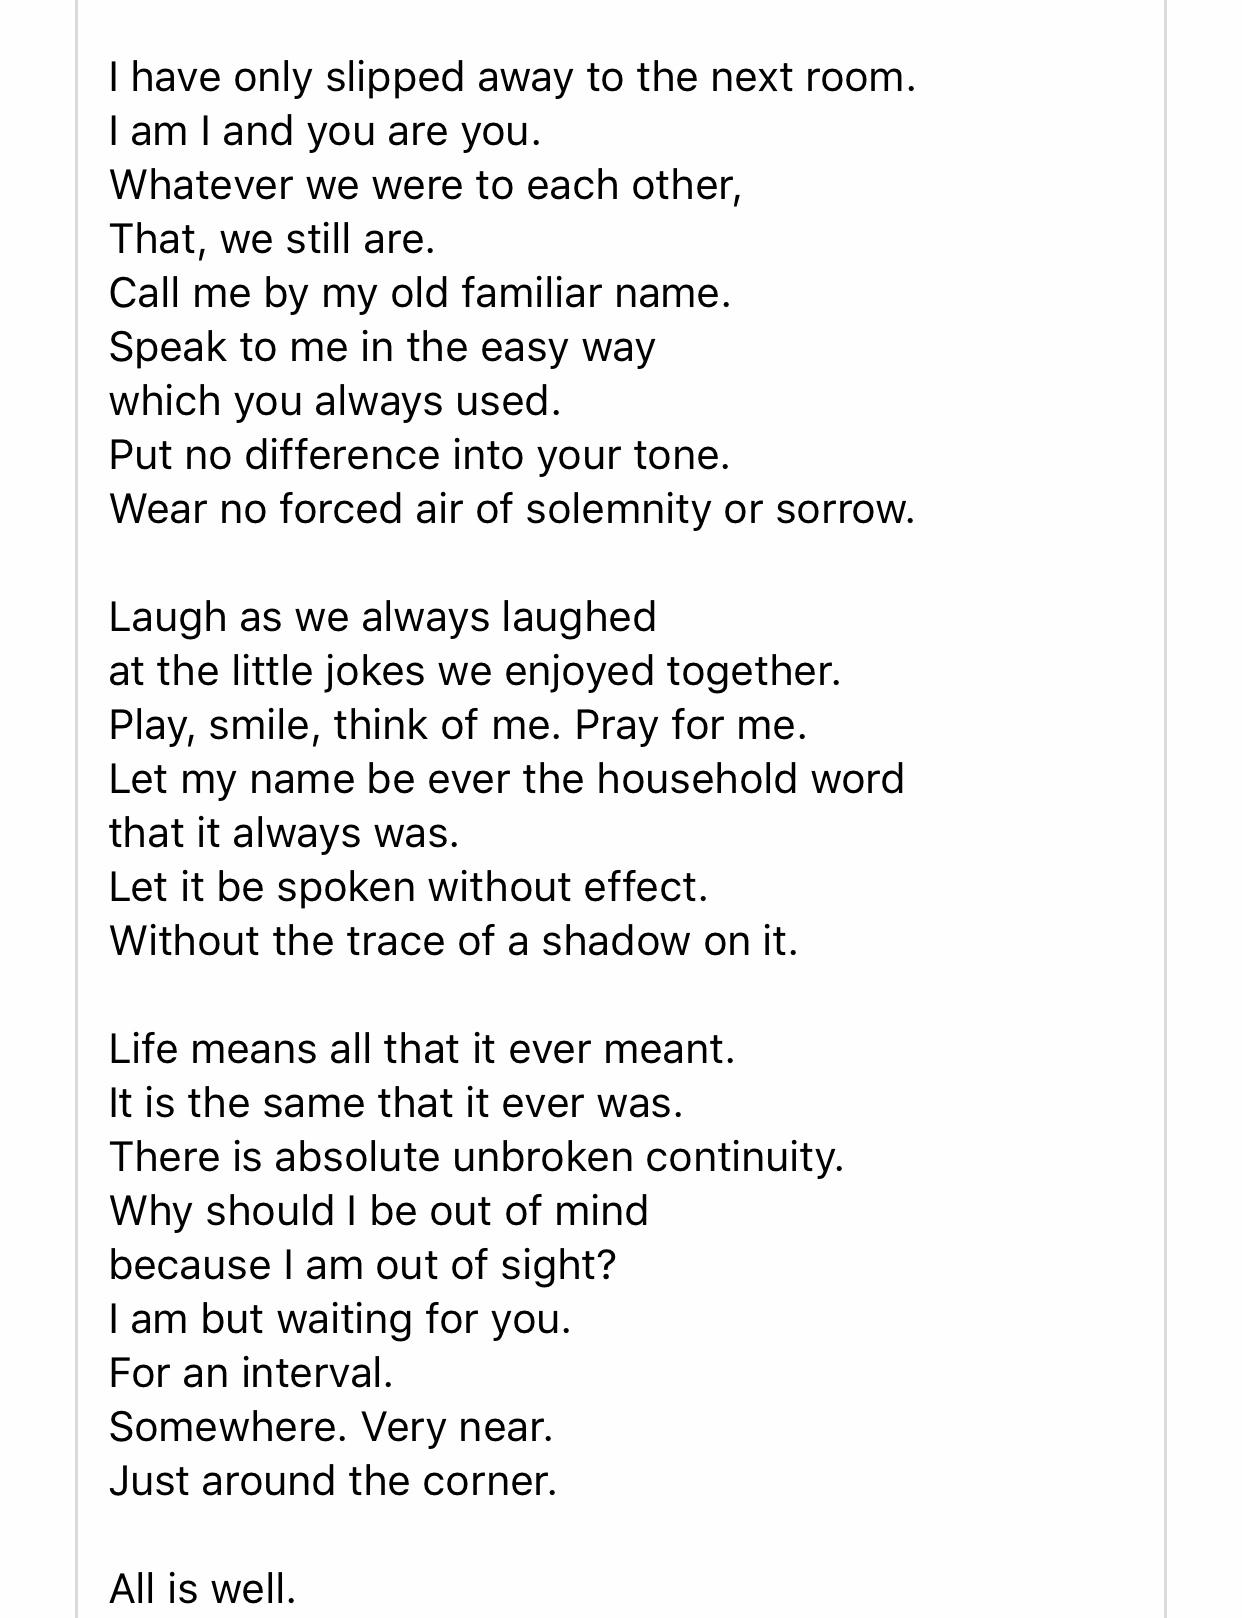 An excerpt from a poem by Henry Scott Holland speaks for us. Benjamin and all of you are in our thoughts. Betancourt/Agnew & Cecere Families